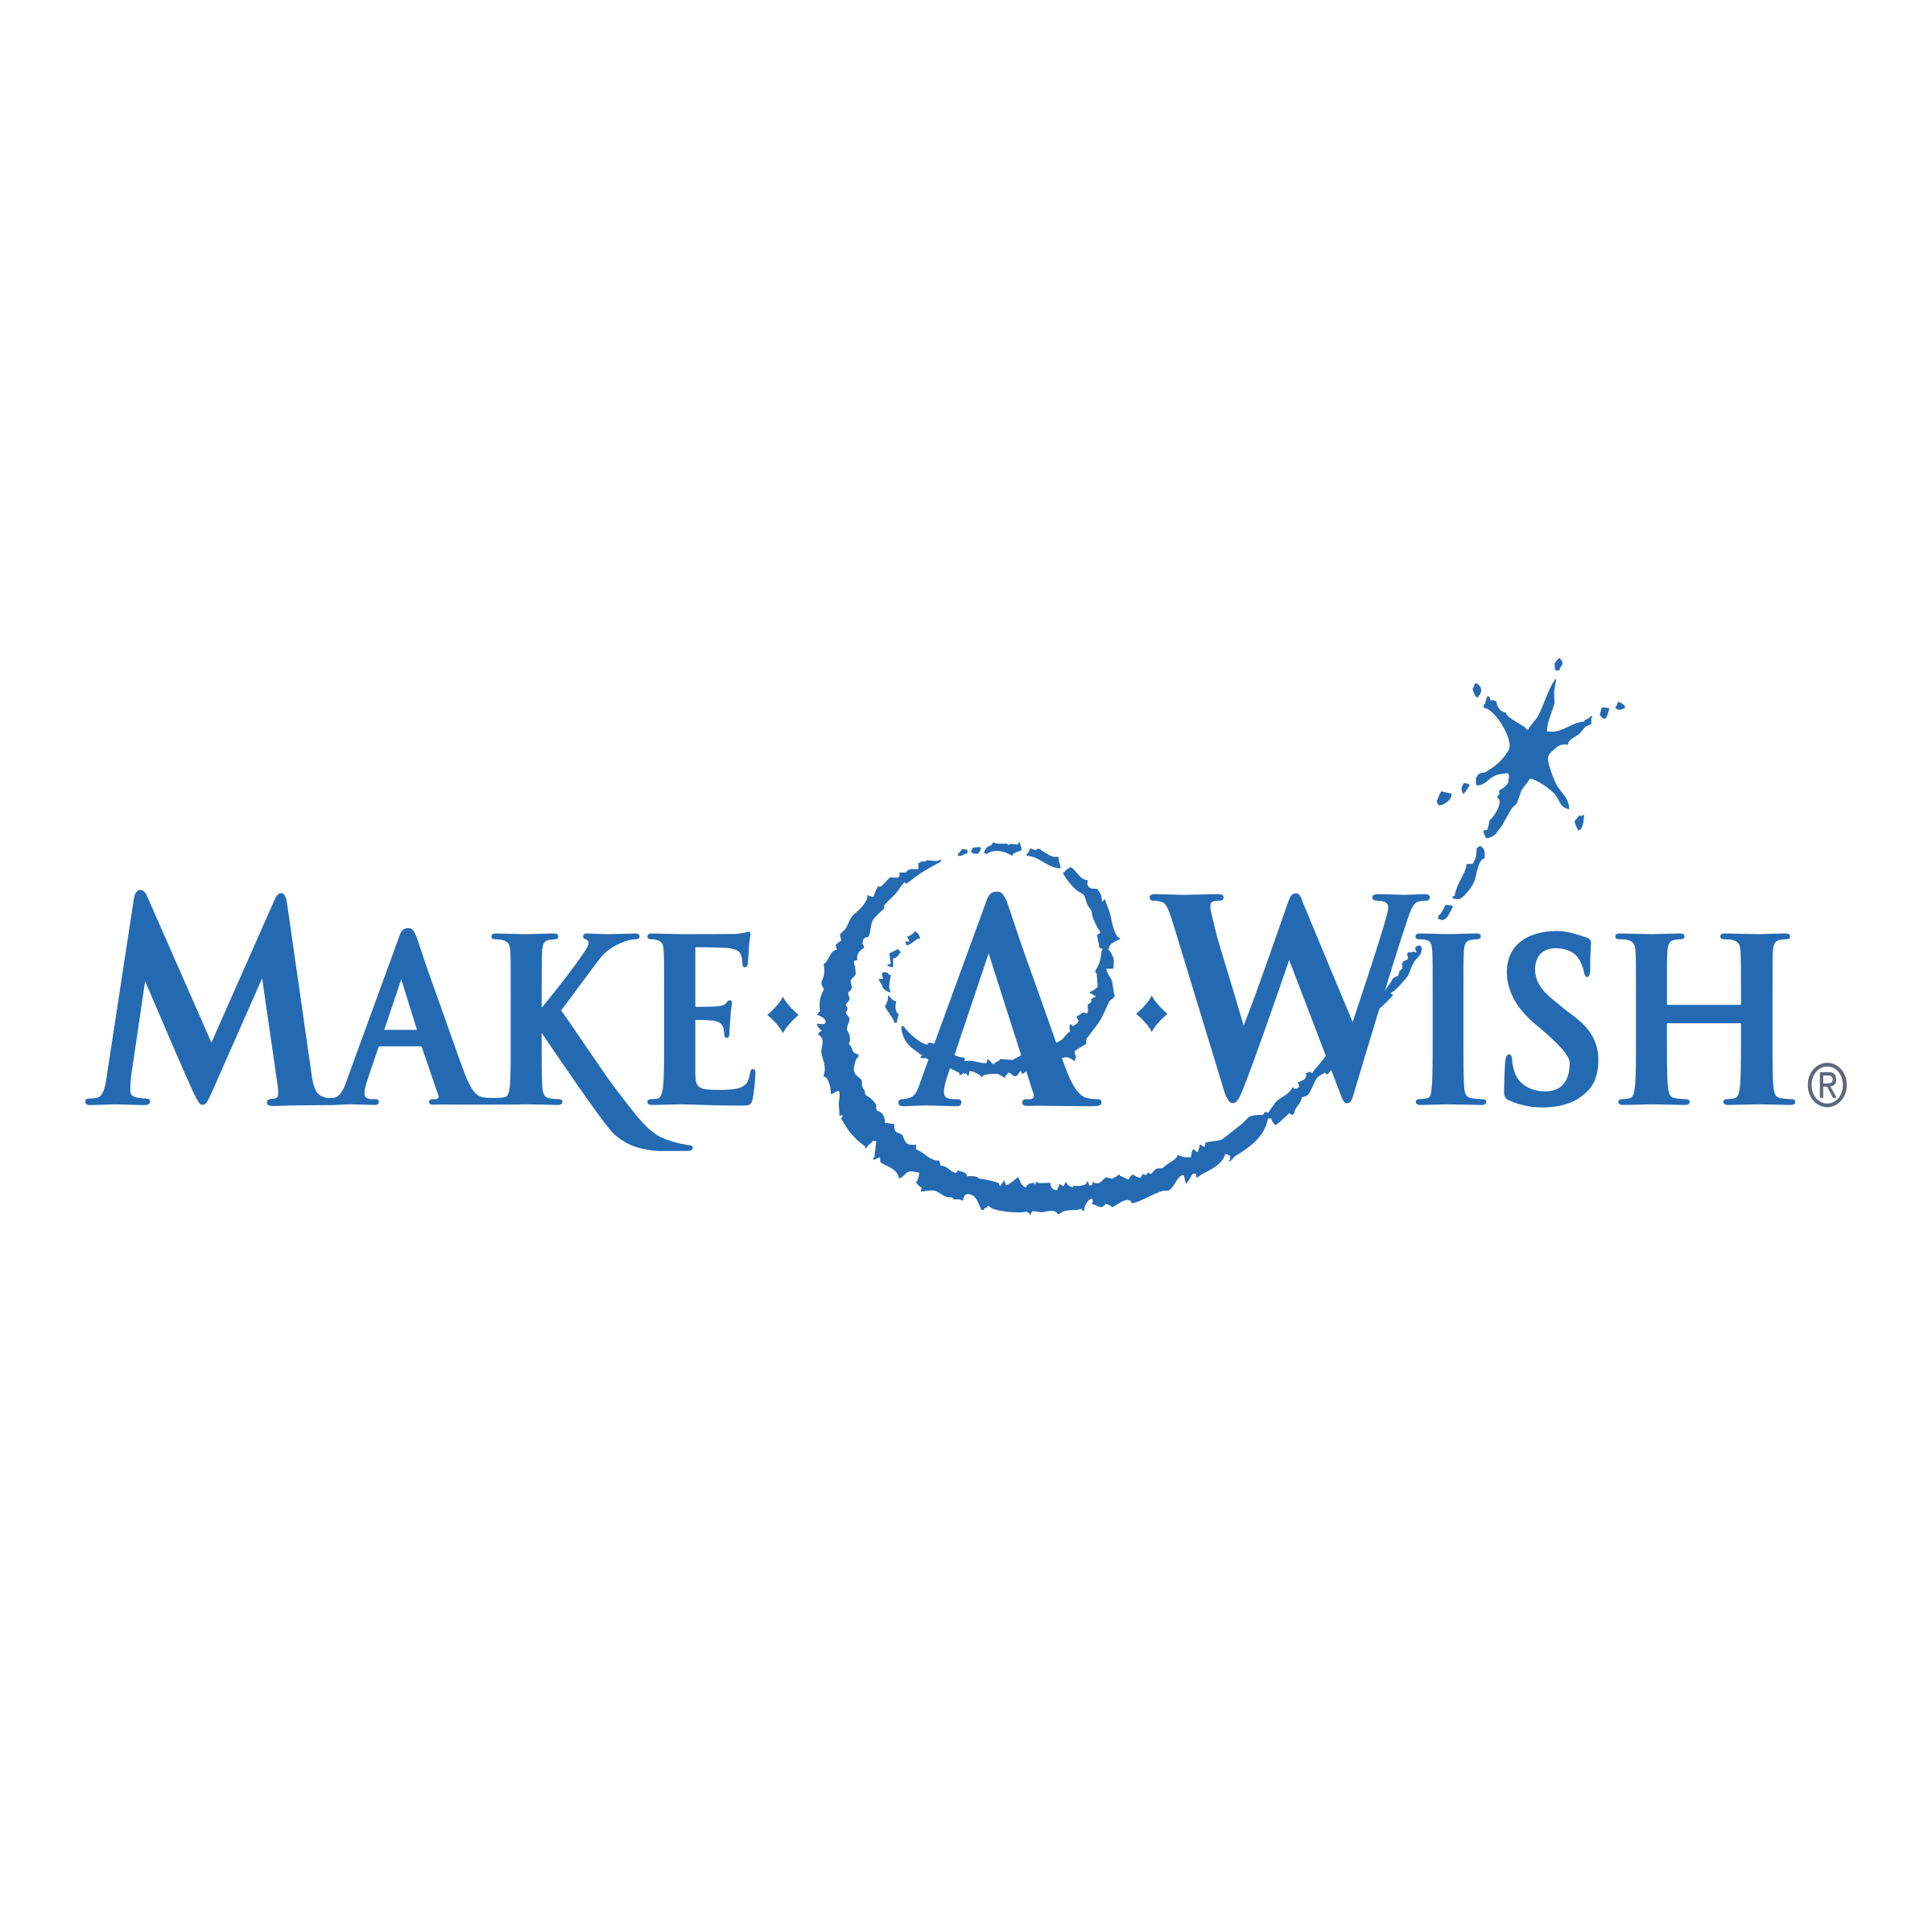 make a wish png